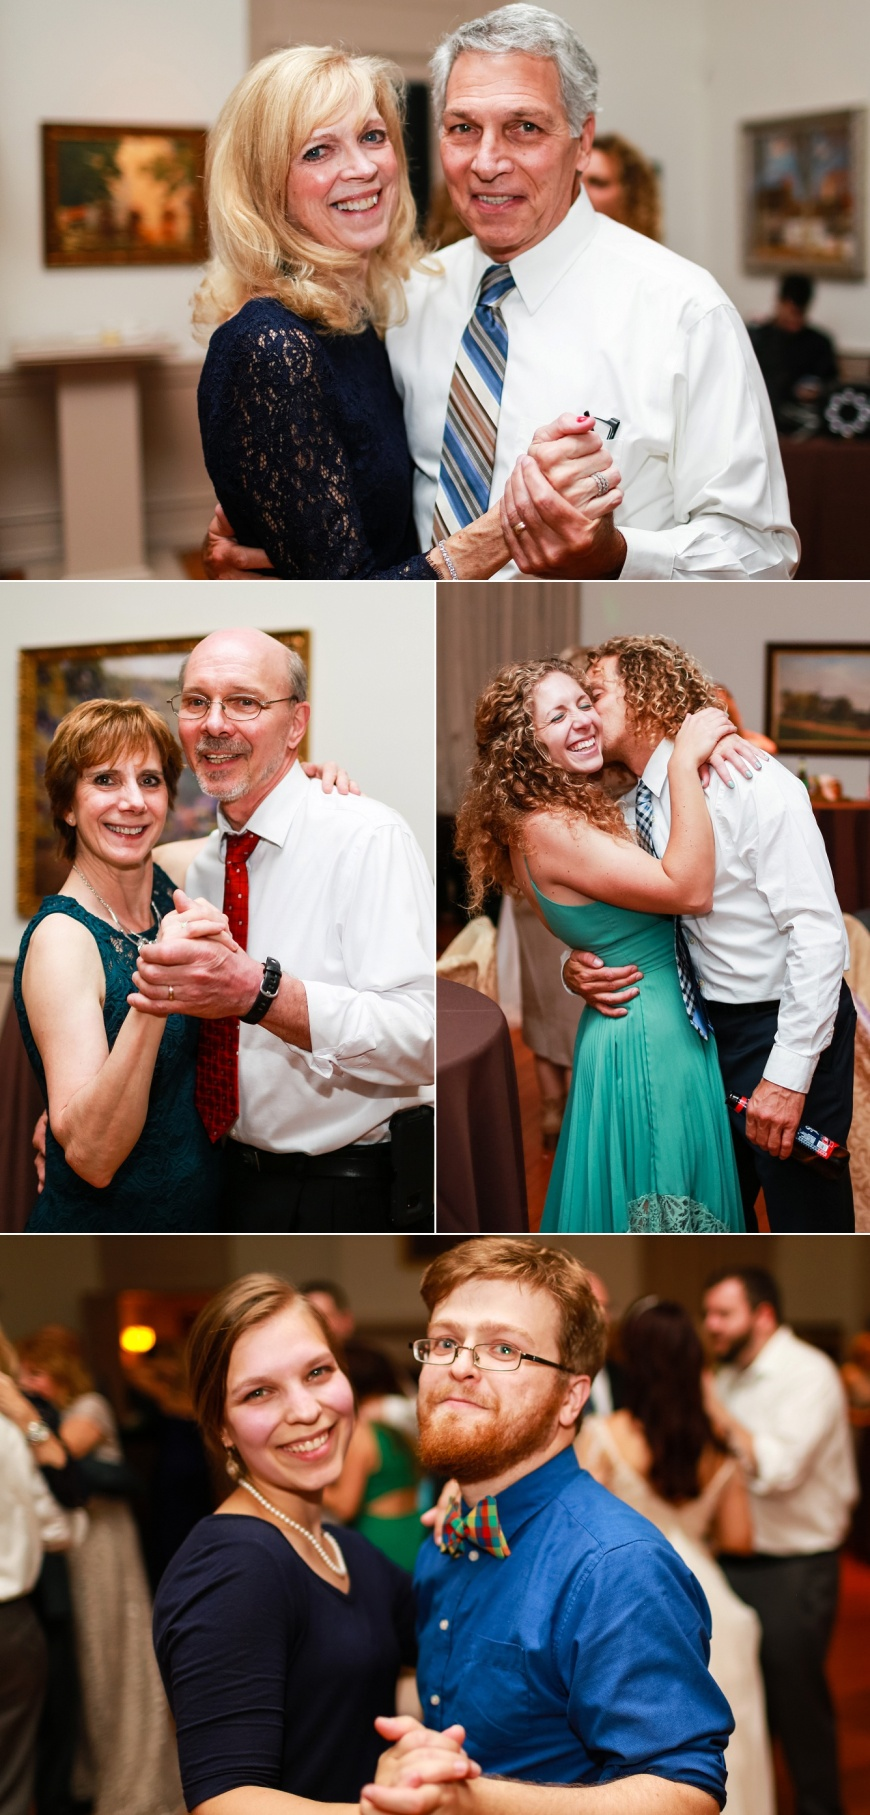 Mercer-Museum-Wedding-Photographer_1087.jpg